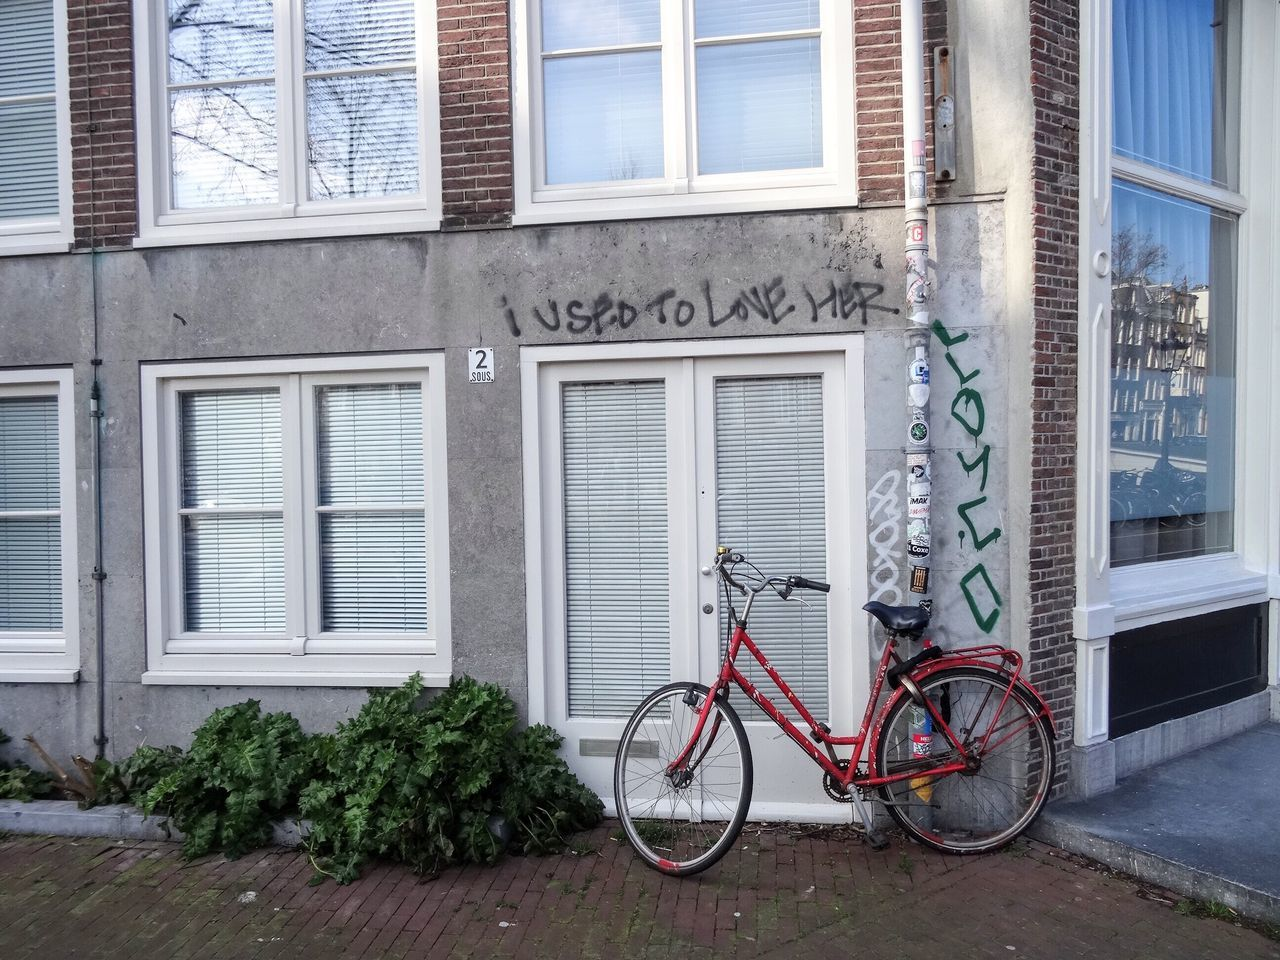 Bicycle Building Exterior Architecture City Outdoors Day No People I Used To Love Her Graffiti Red Bike